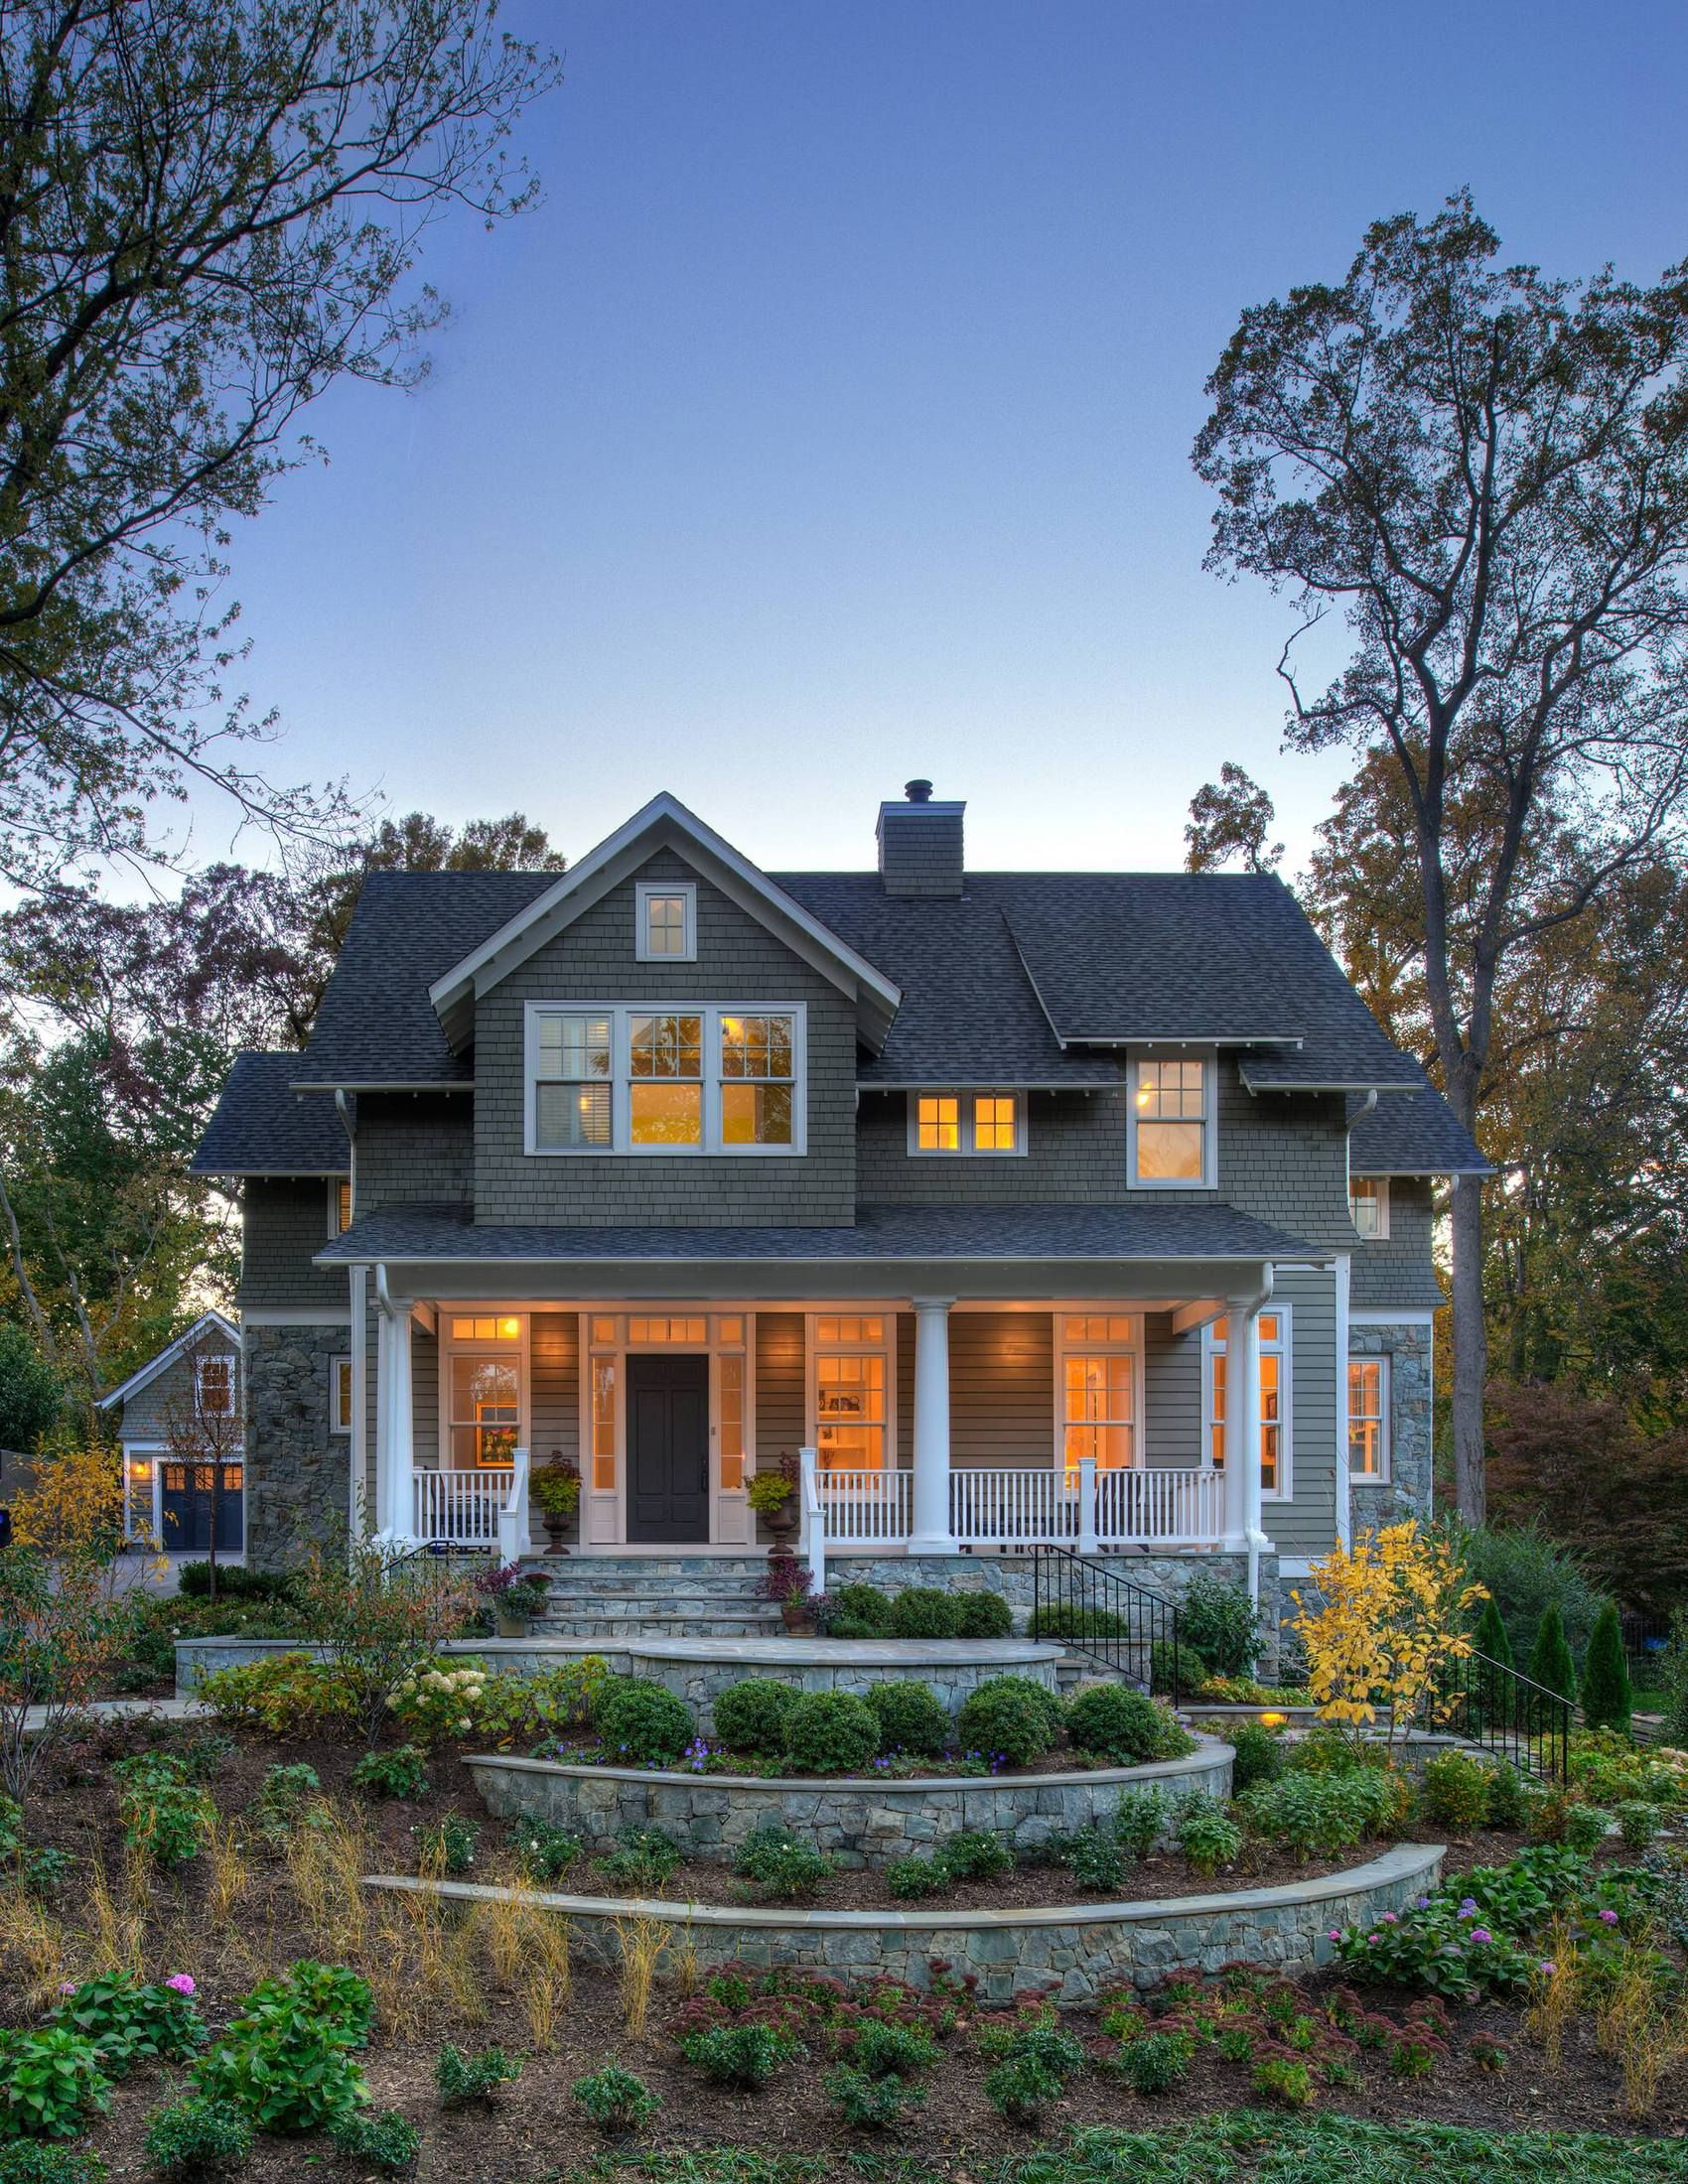 Terraced Yard Design Ideas Pictures Remodel and